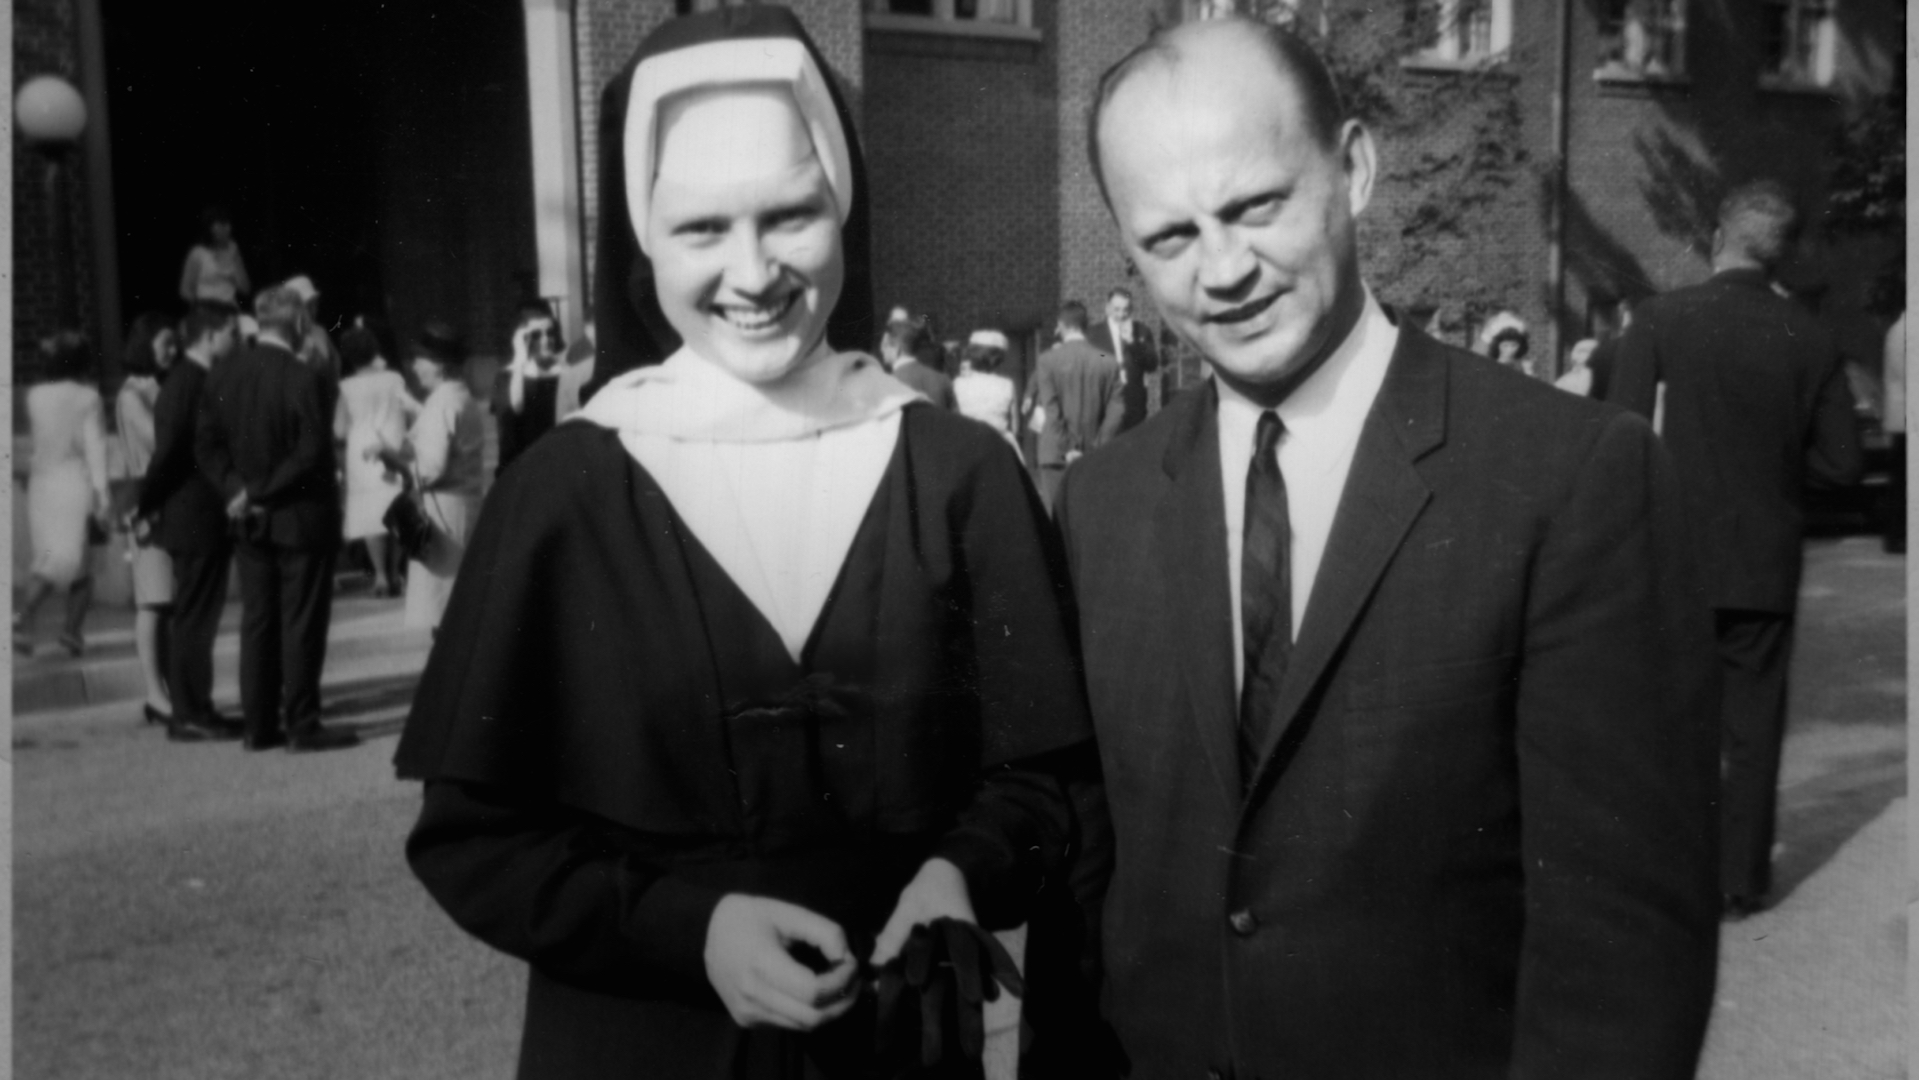 Sister Cathy Cesnick at right (photo: Netflix)